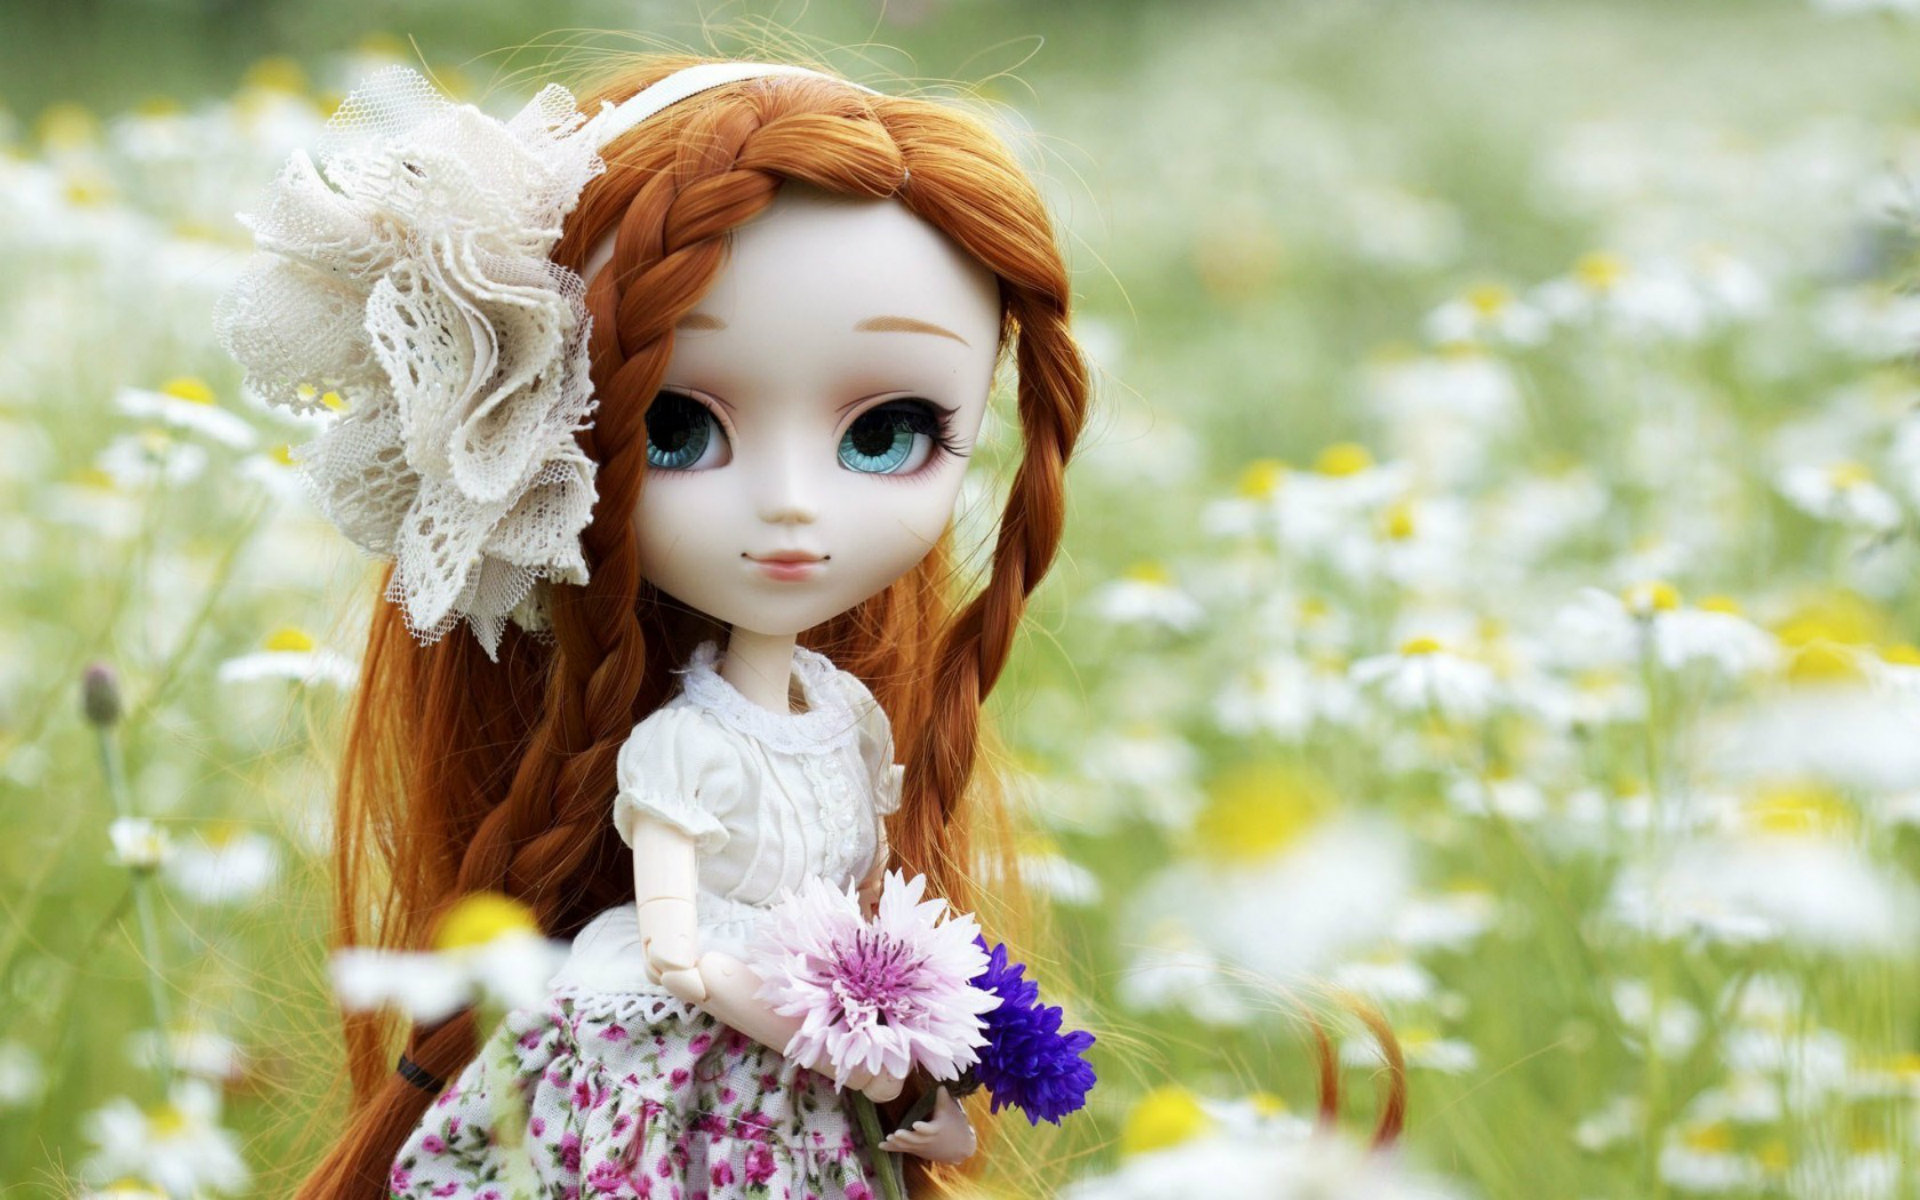 Fullhdcutebabydollwallpapers LoveSove Stylish Cute Dolls Wallpapers For Facebook Baby Ideas 1920x1200